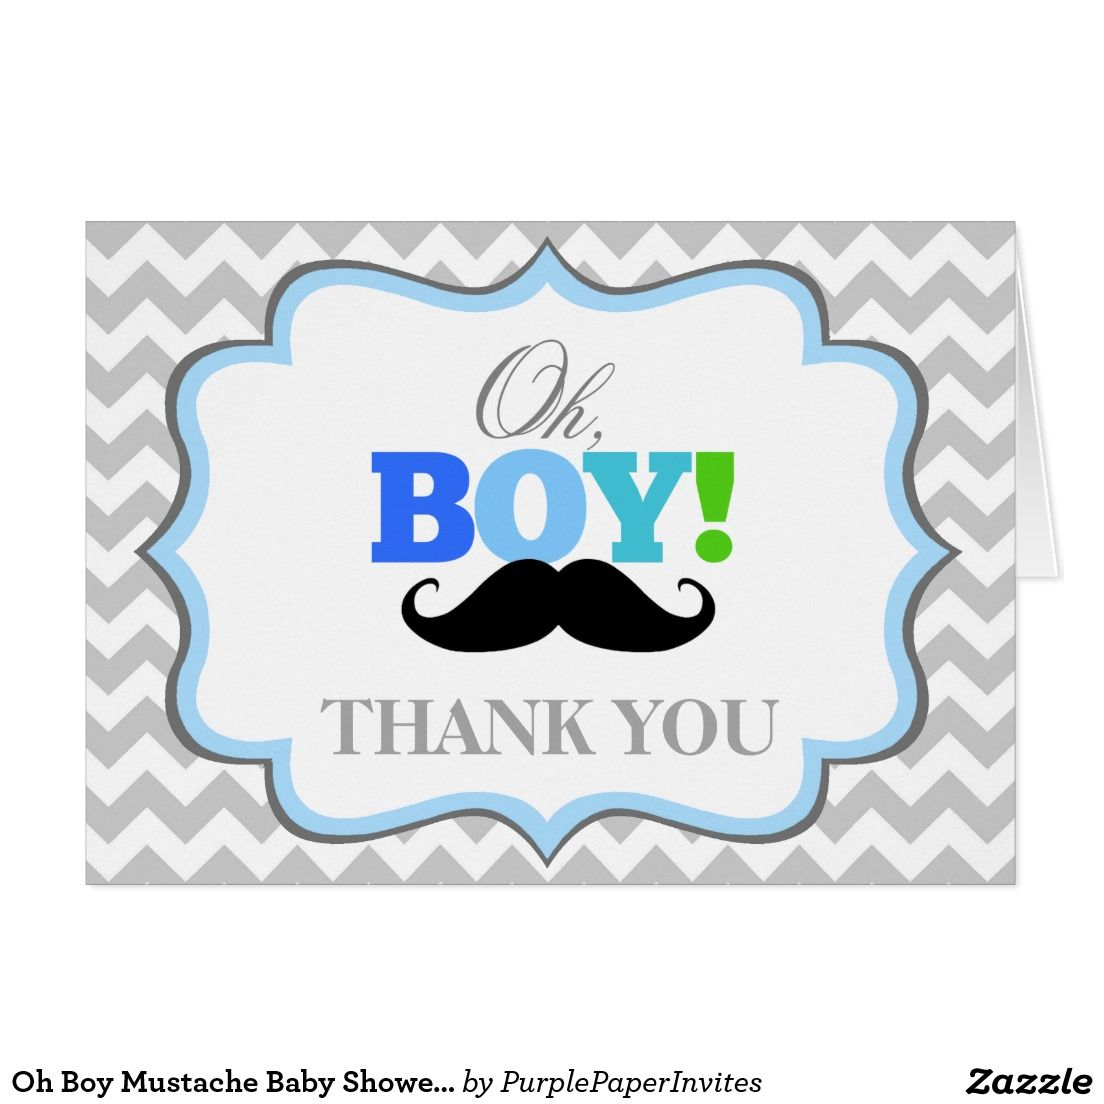 Oh Boy Mustache Baby Shower Thank You Card Baby Shower Thank You